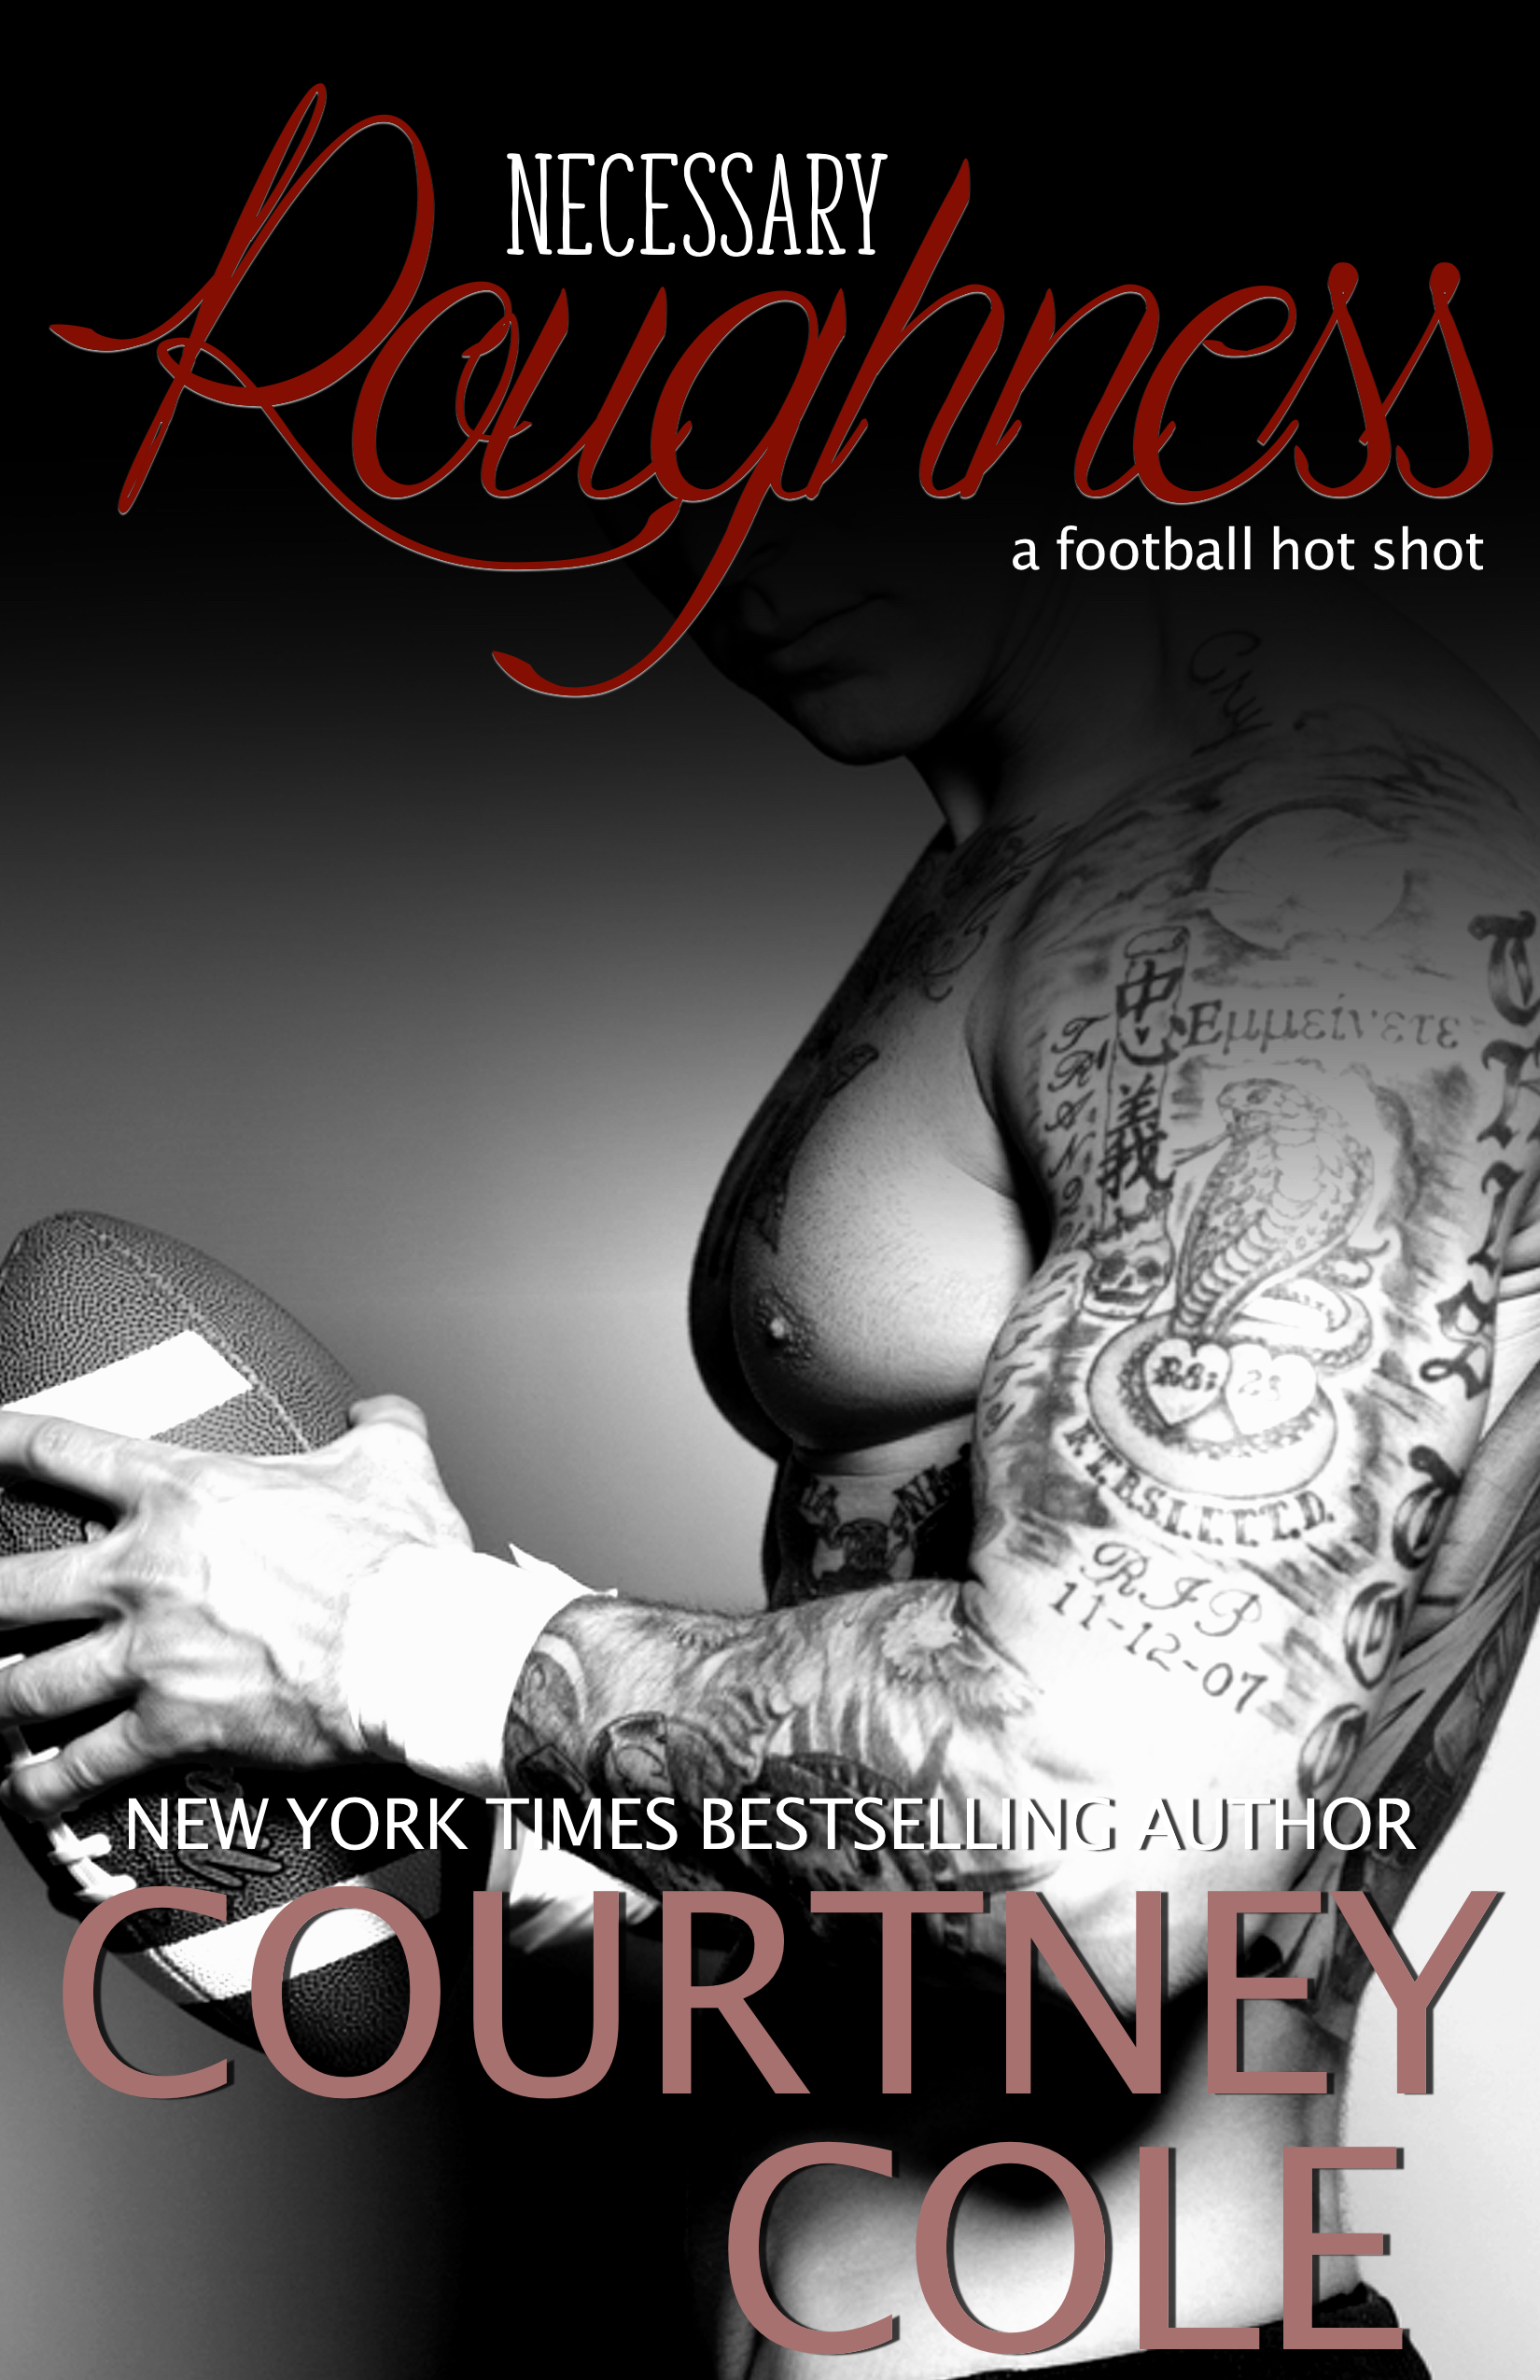 New Release - Necessary Roughness - Courtney Cole